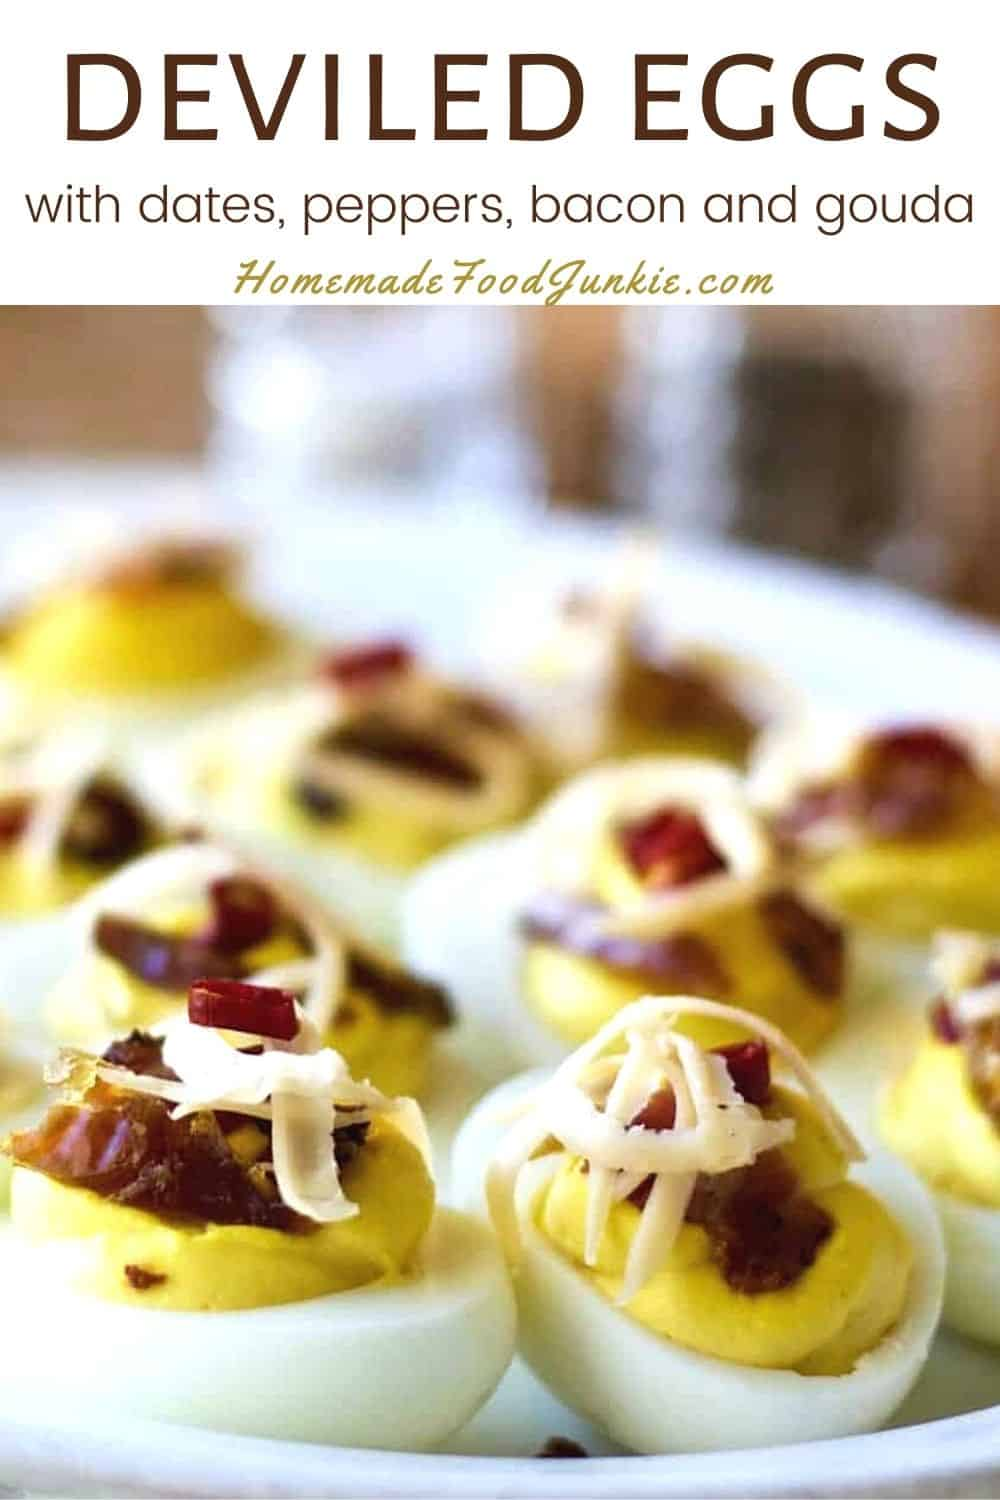 Deviled eggs with dates, peppers, bacon and gouda-pin image